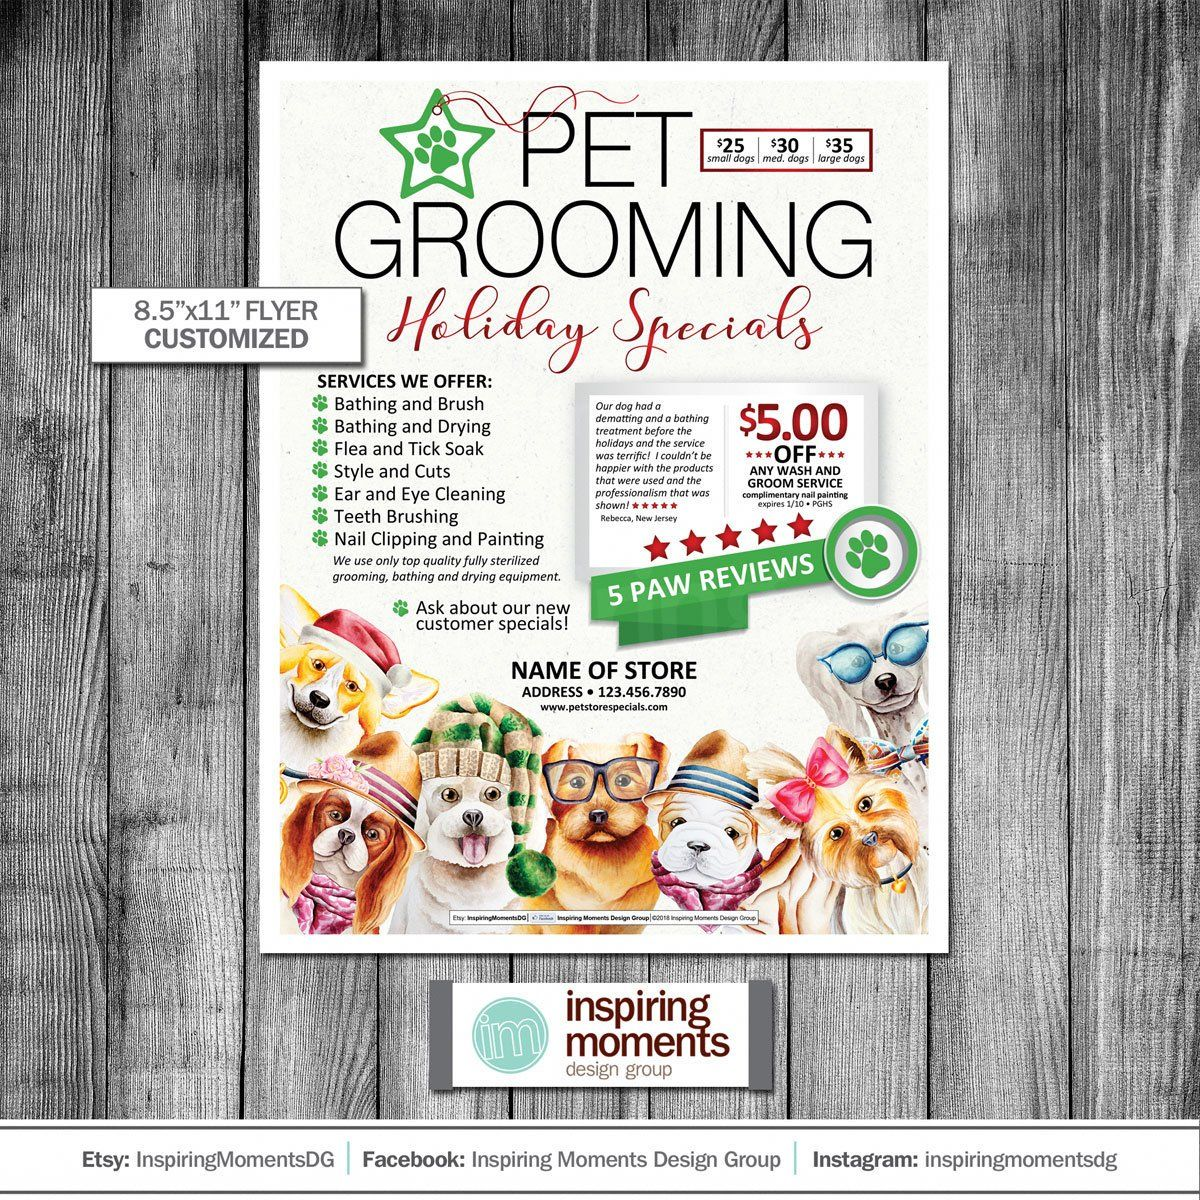 Dog Grooming Flyer Printable Holiday Dog Groomer Small Business Pet Store Specials Fundraiser Flyer De Dog Grooming Dog Holiday Dog Grooming Shop